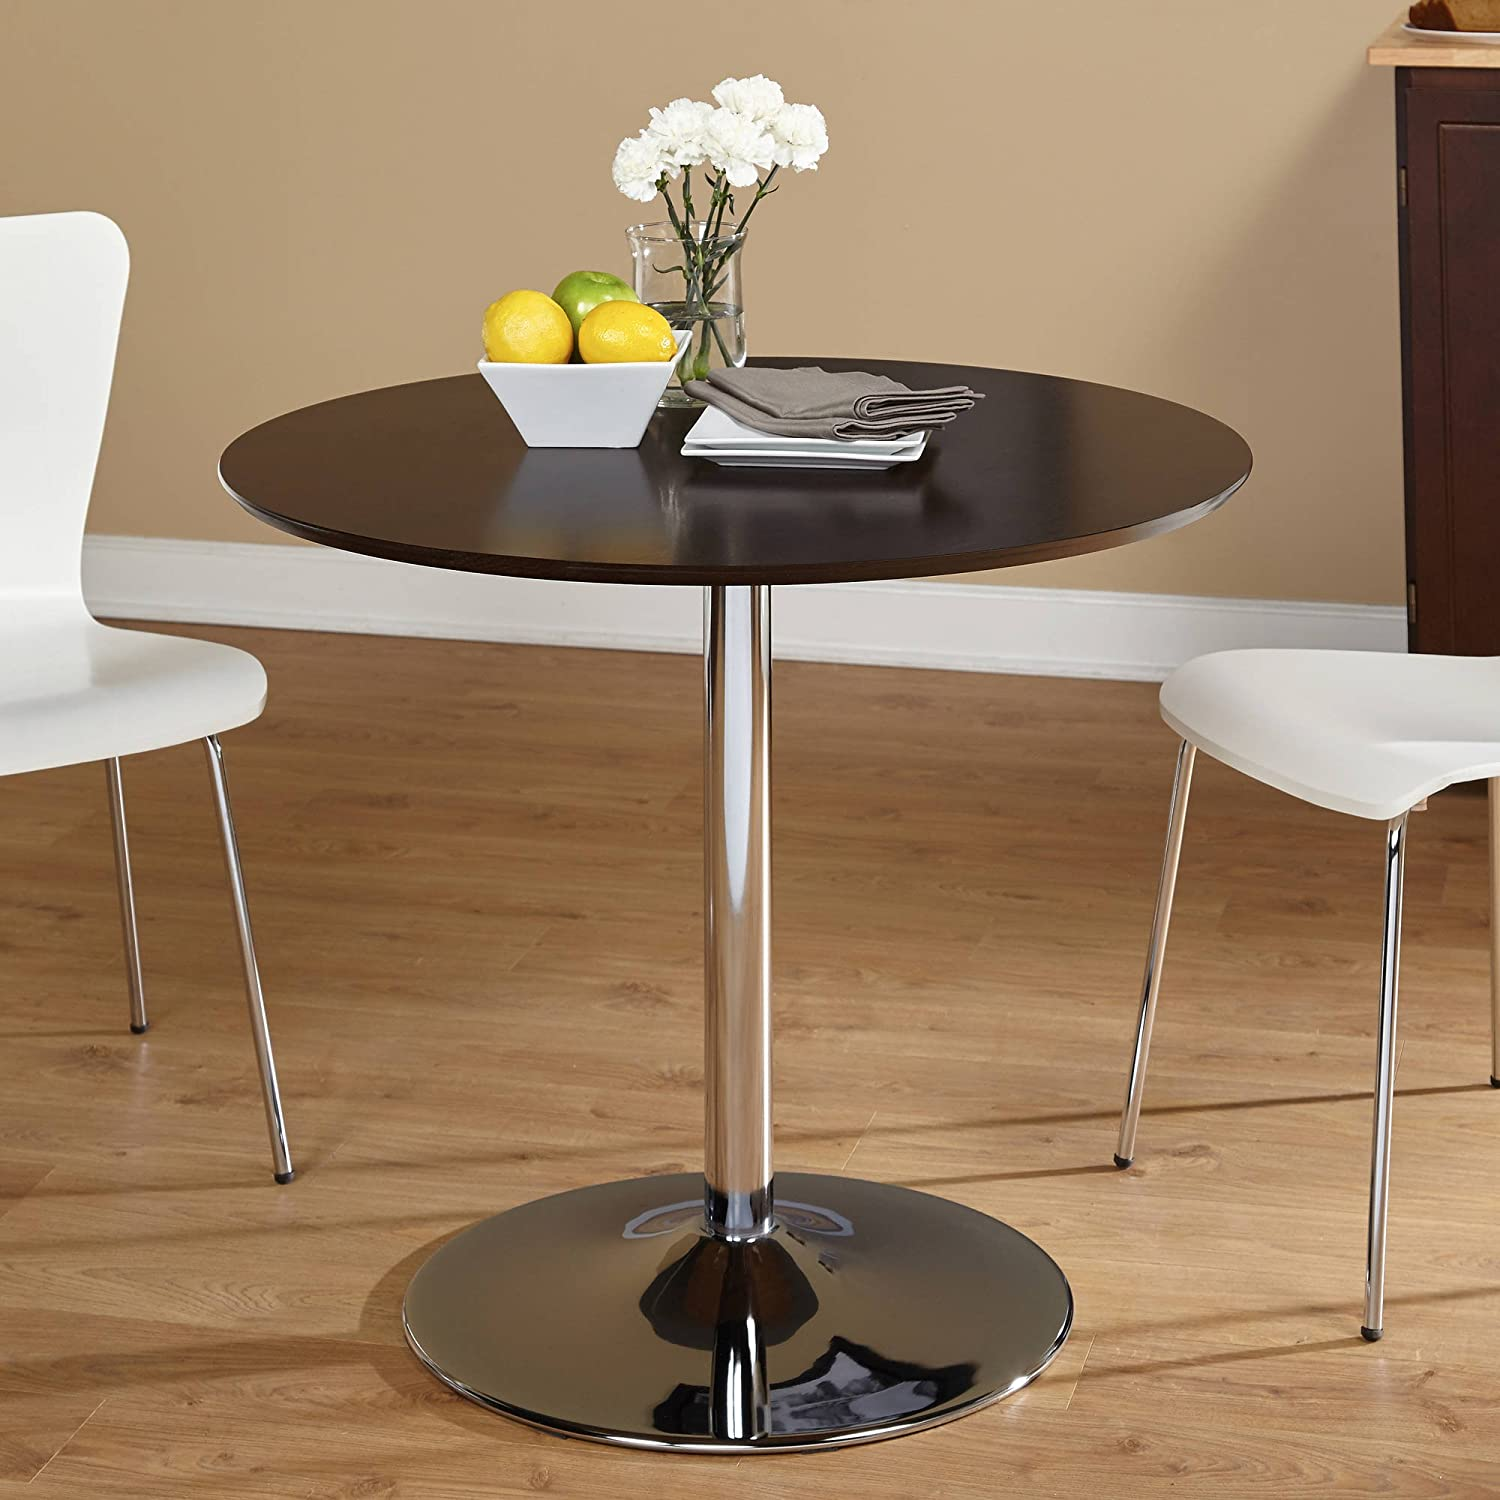 Elegant table classic vintage styling updated with an oh so modern espresso finish the chrome plated pedestal base supports a round table that is the